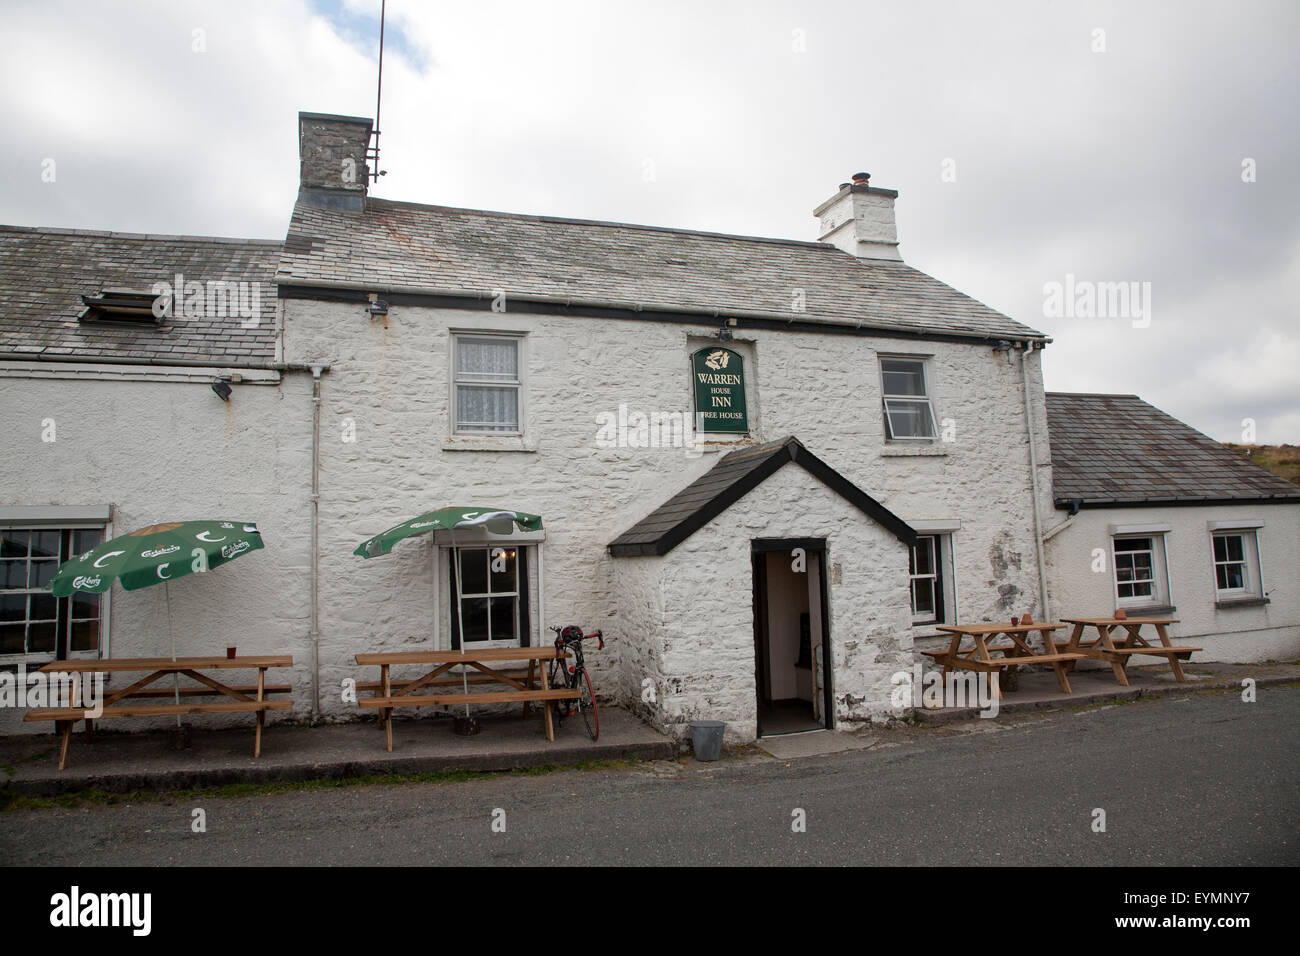 Warren House Inn, Postbridge, Dartmoor national park, Devon, England, UK - Stock Image